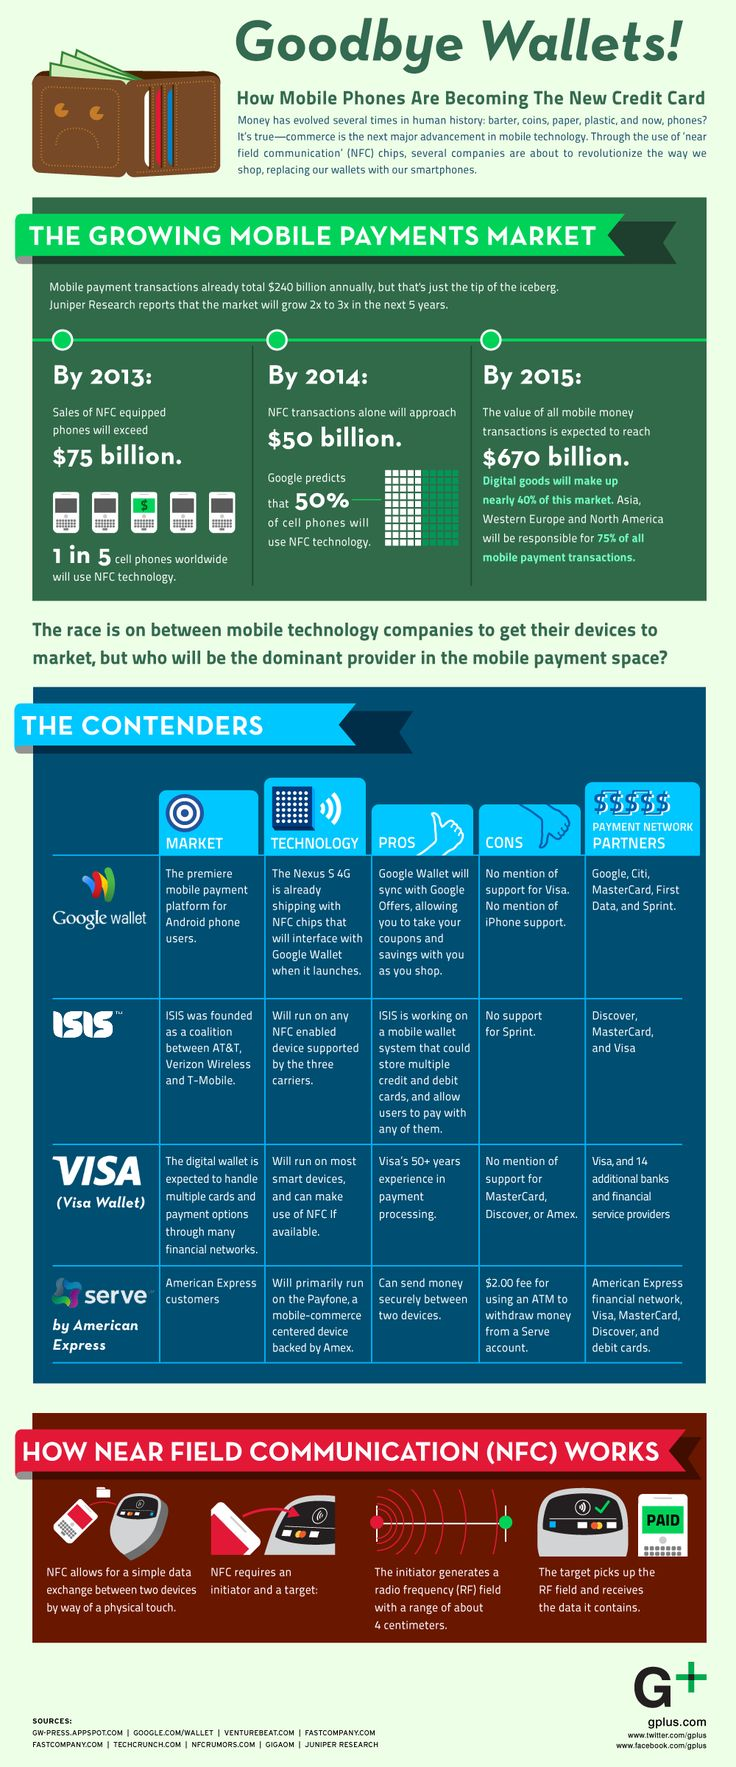 GoodBye Wallets! Your cell phone is your New Credit Card! #Infographic by Tim #DailyInfographic  Phones are evolving so fast they will soon be the only thing in our pockets. Like how they destroyed the MP3 player, we'll have our drivers license, credit cards and car keys all on different apps. The keychain companies will take a hit, but think about always having open pockets for other things.